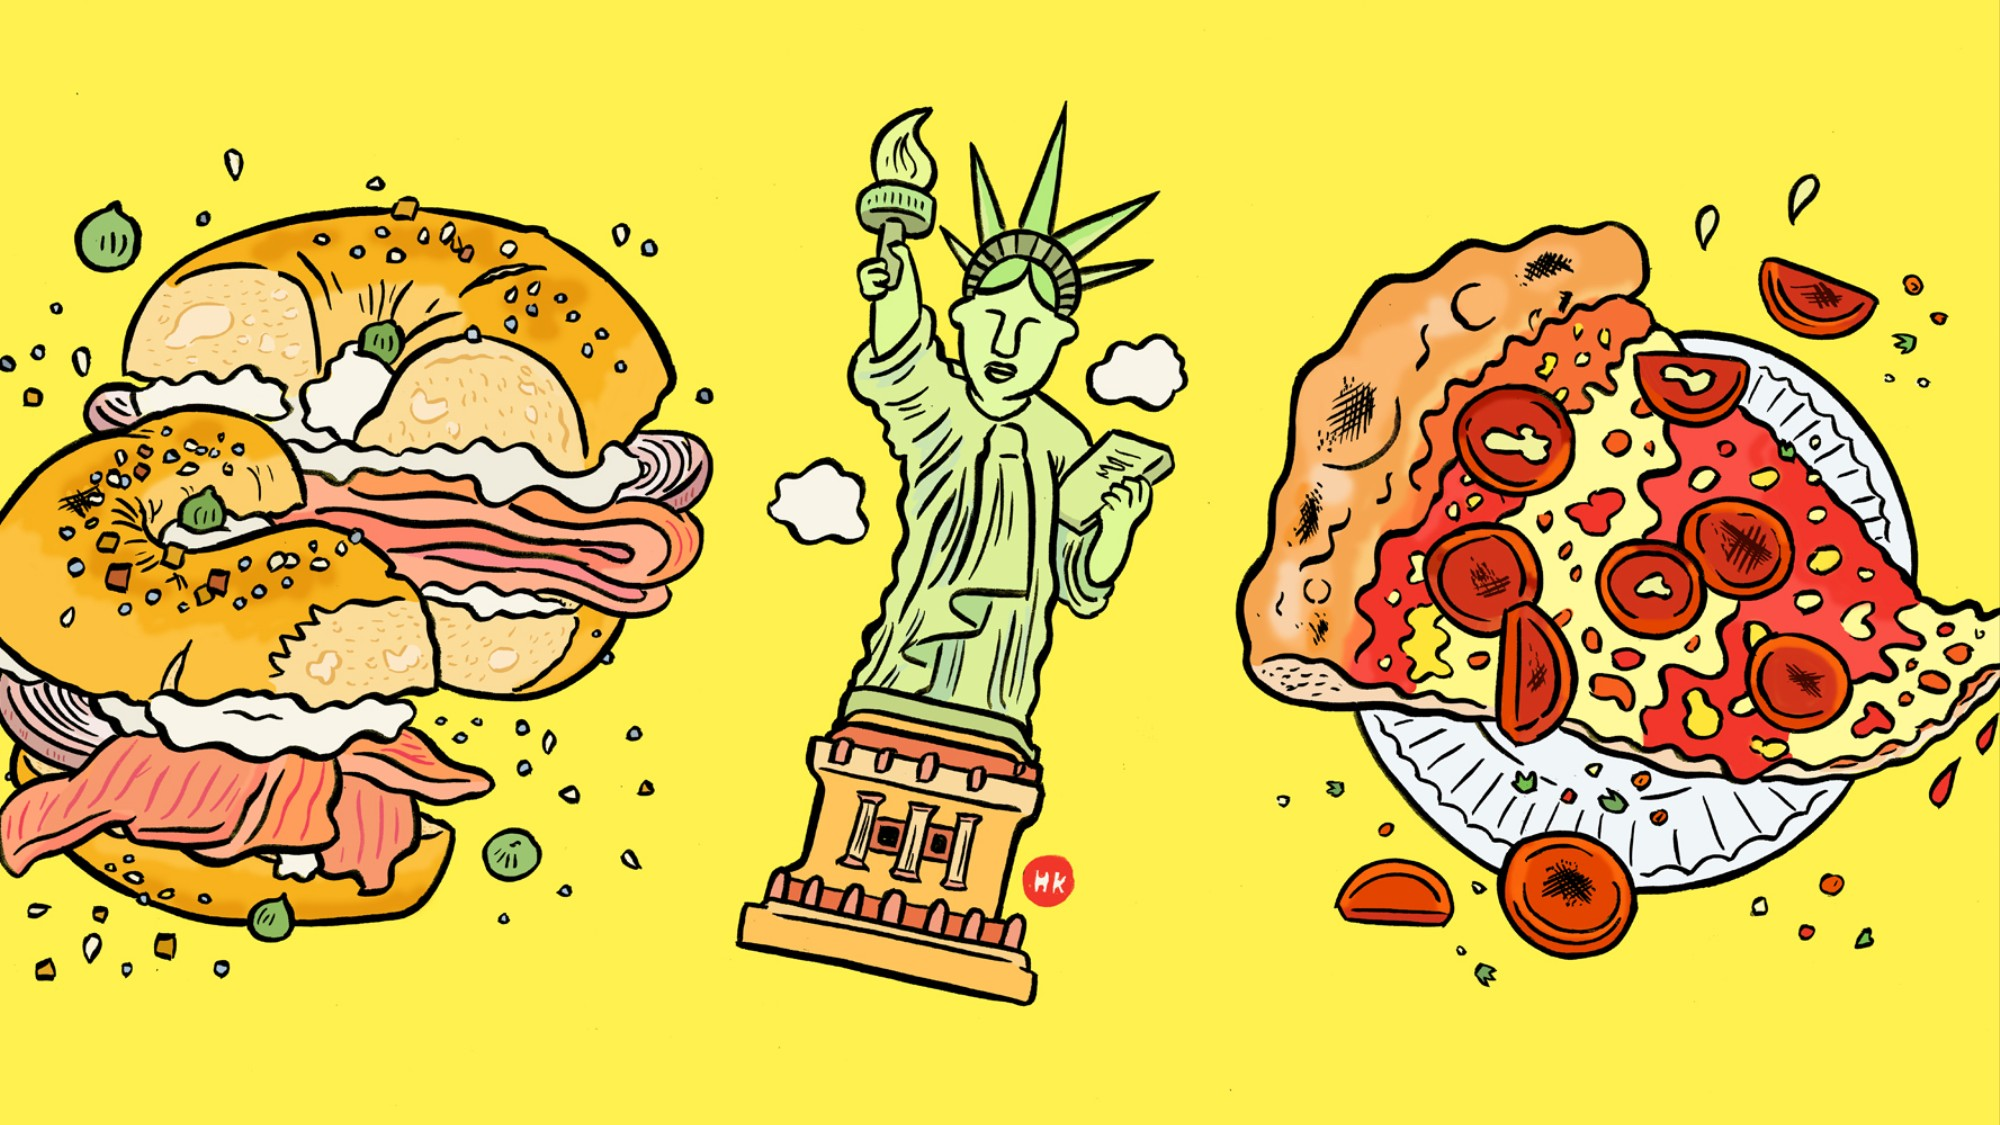 eating breakfast clipart late night